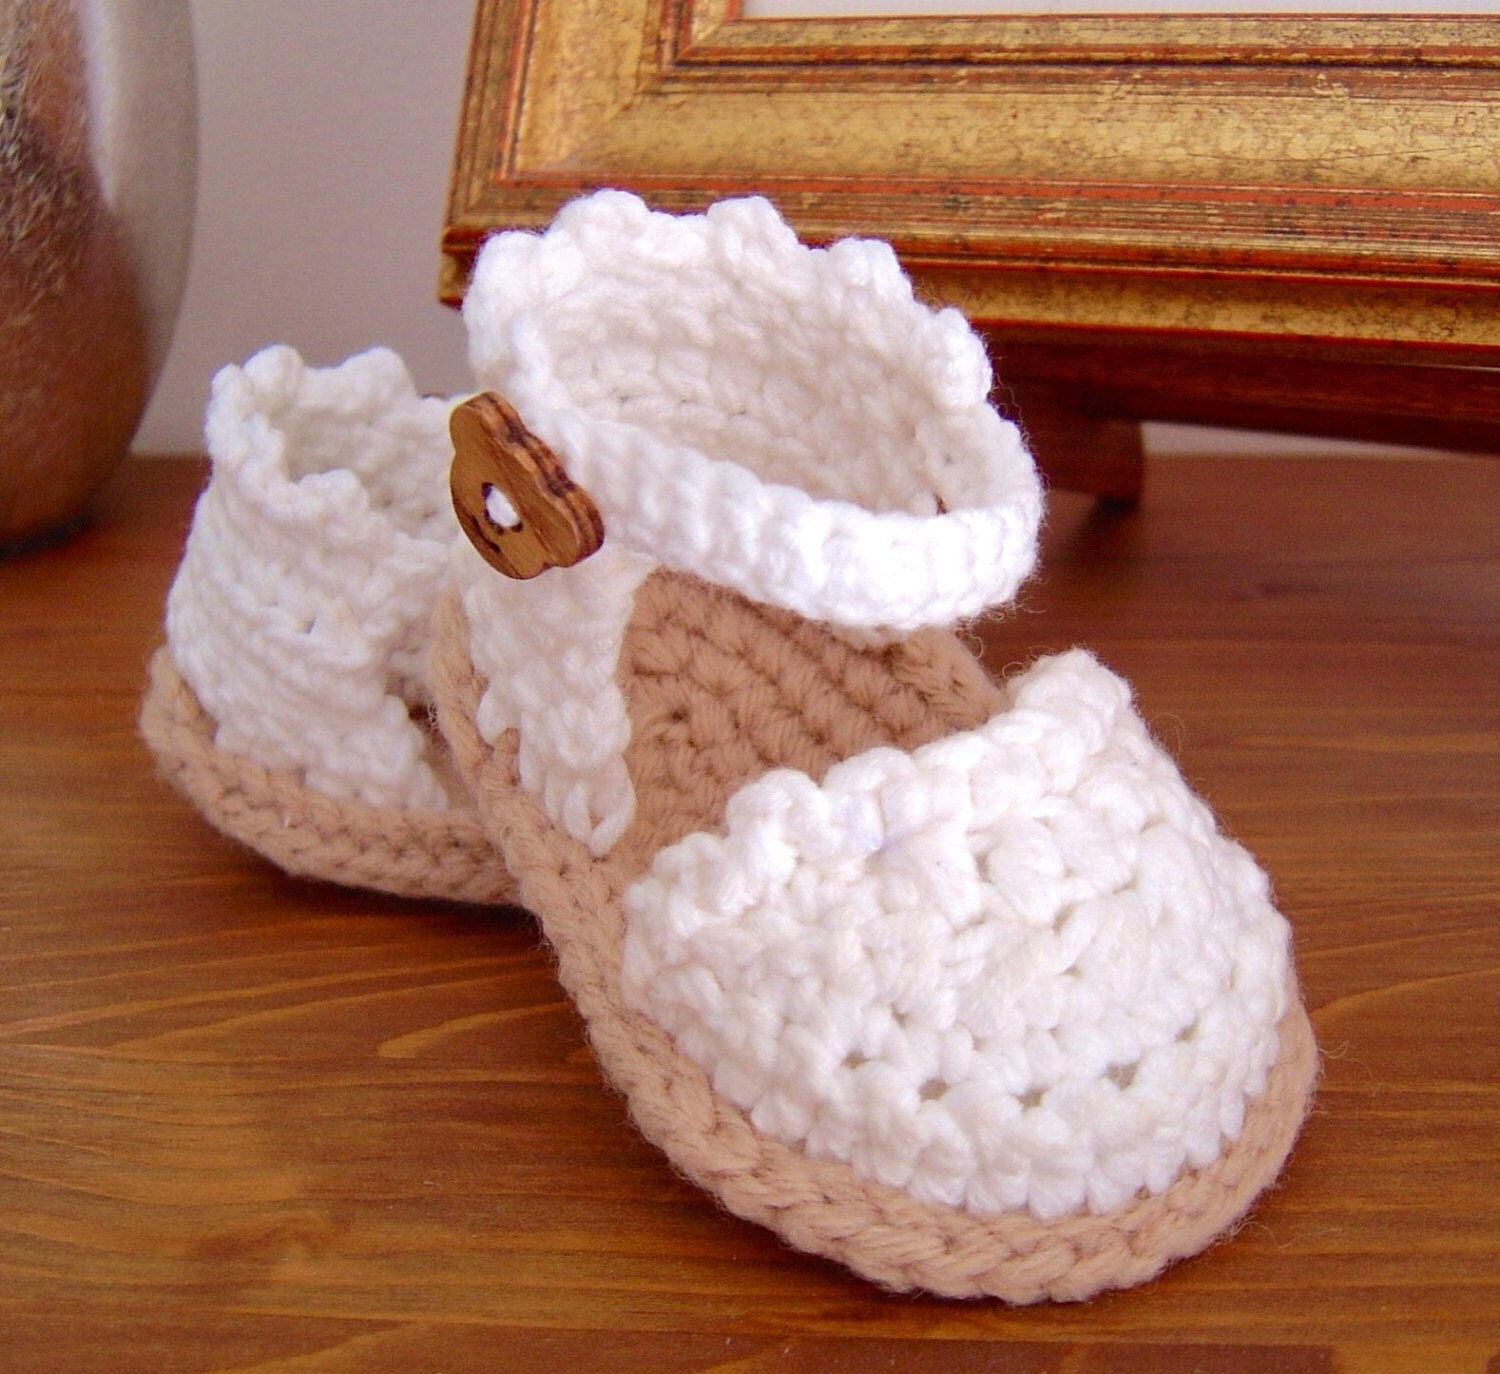 Crochet pattern baby espadrille sandals instant download baby crochet pattern baby espadrille sandals instant download baby shoes pattern photo tutorial bankloansurffo Image collections